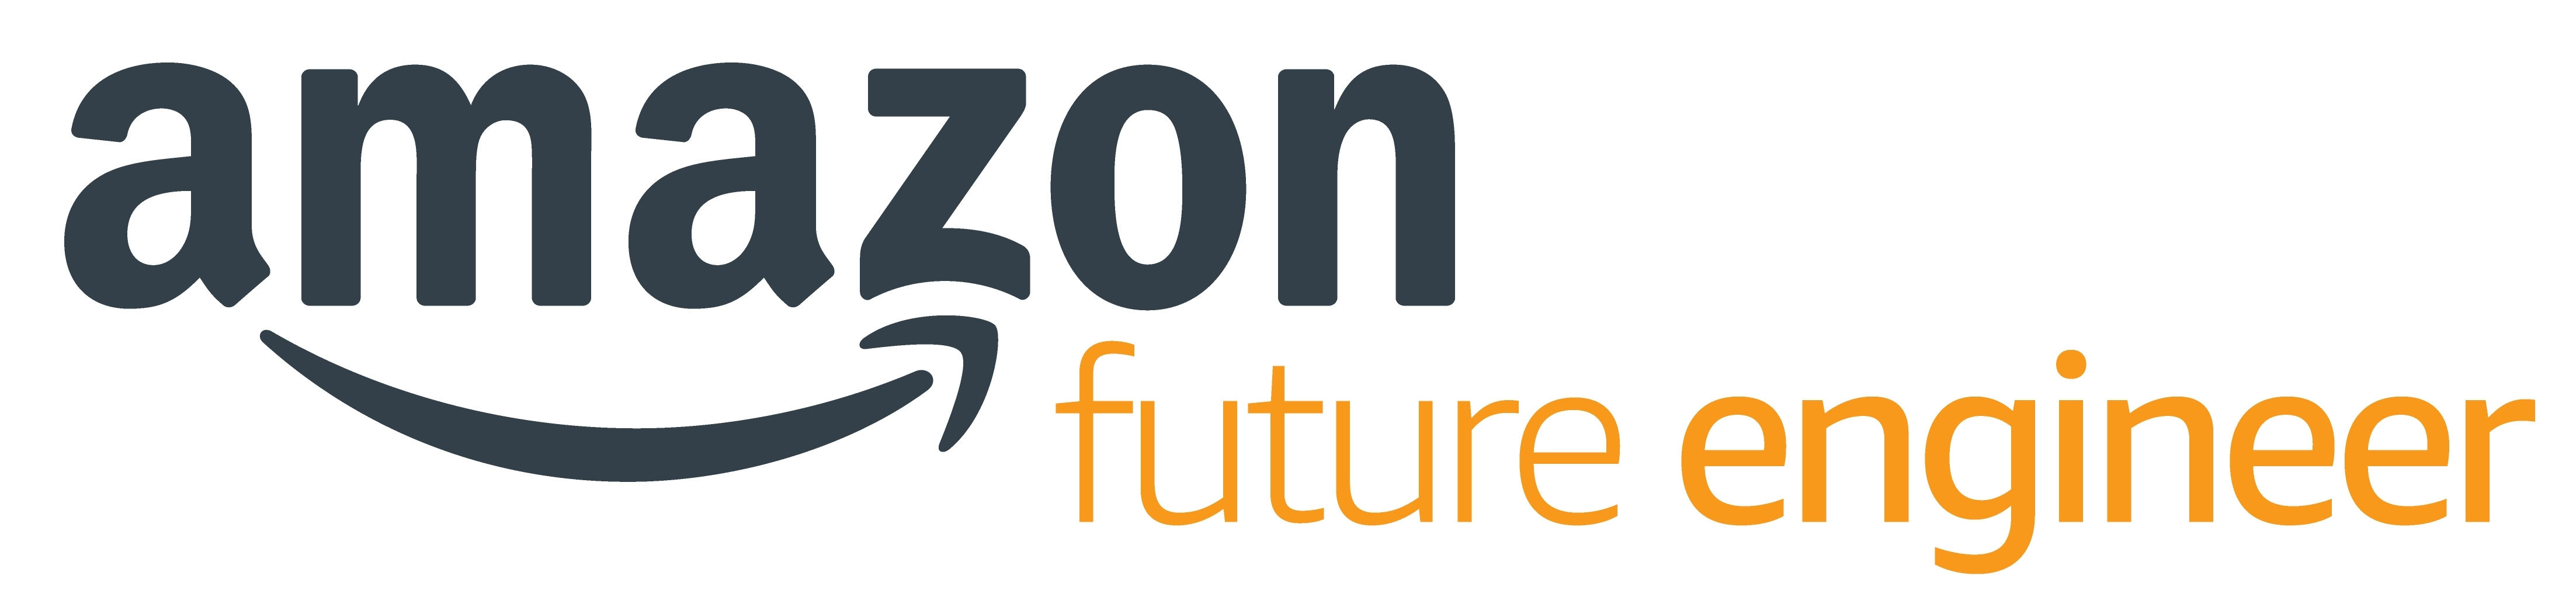 Image result for Amazon future engineer logo""